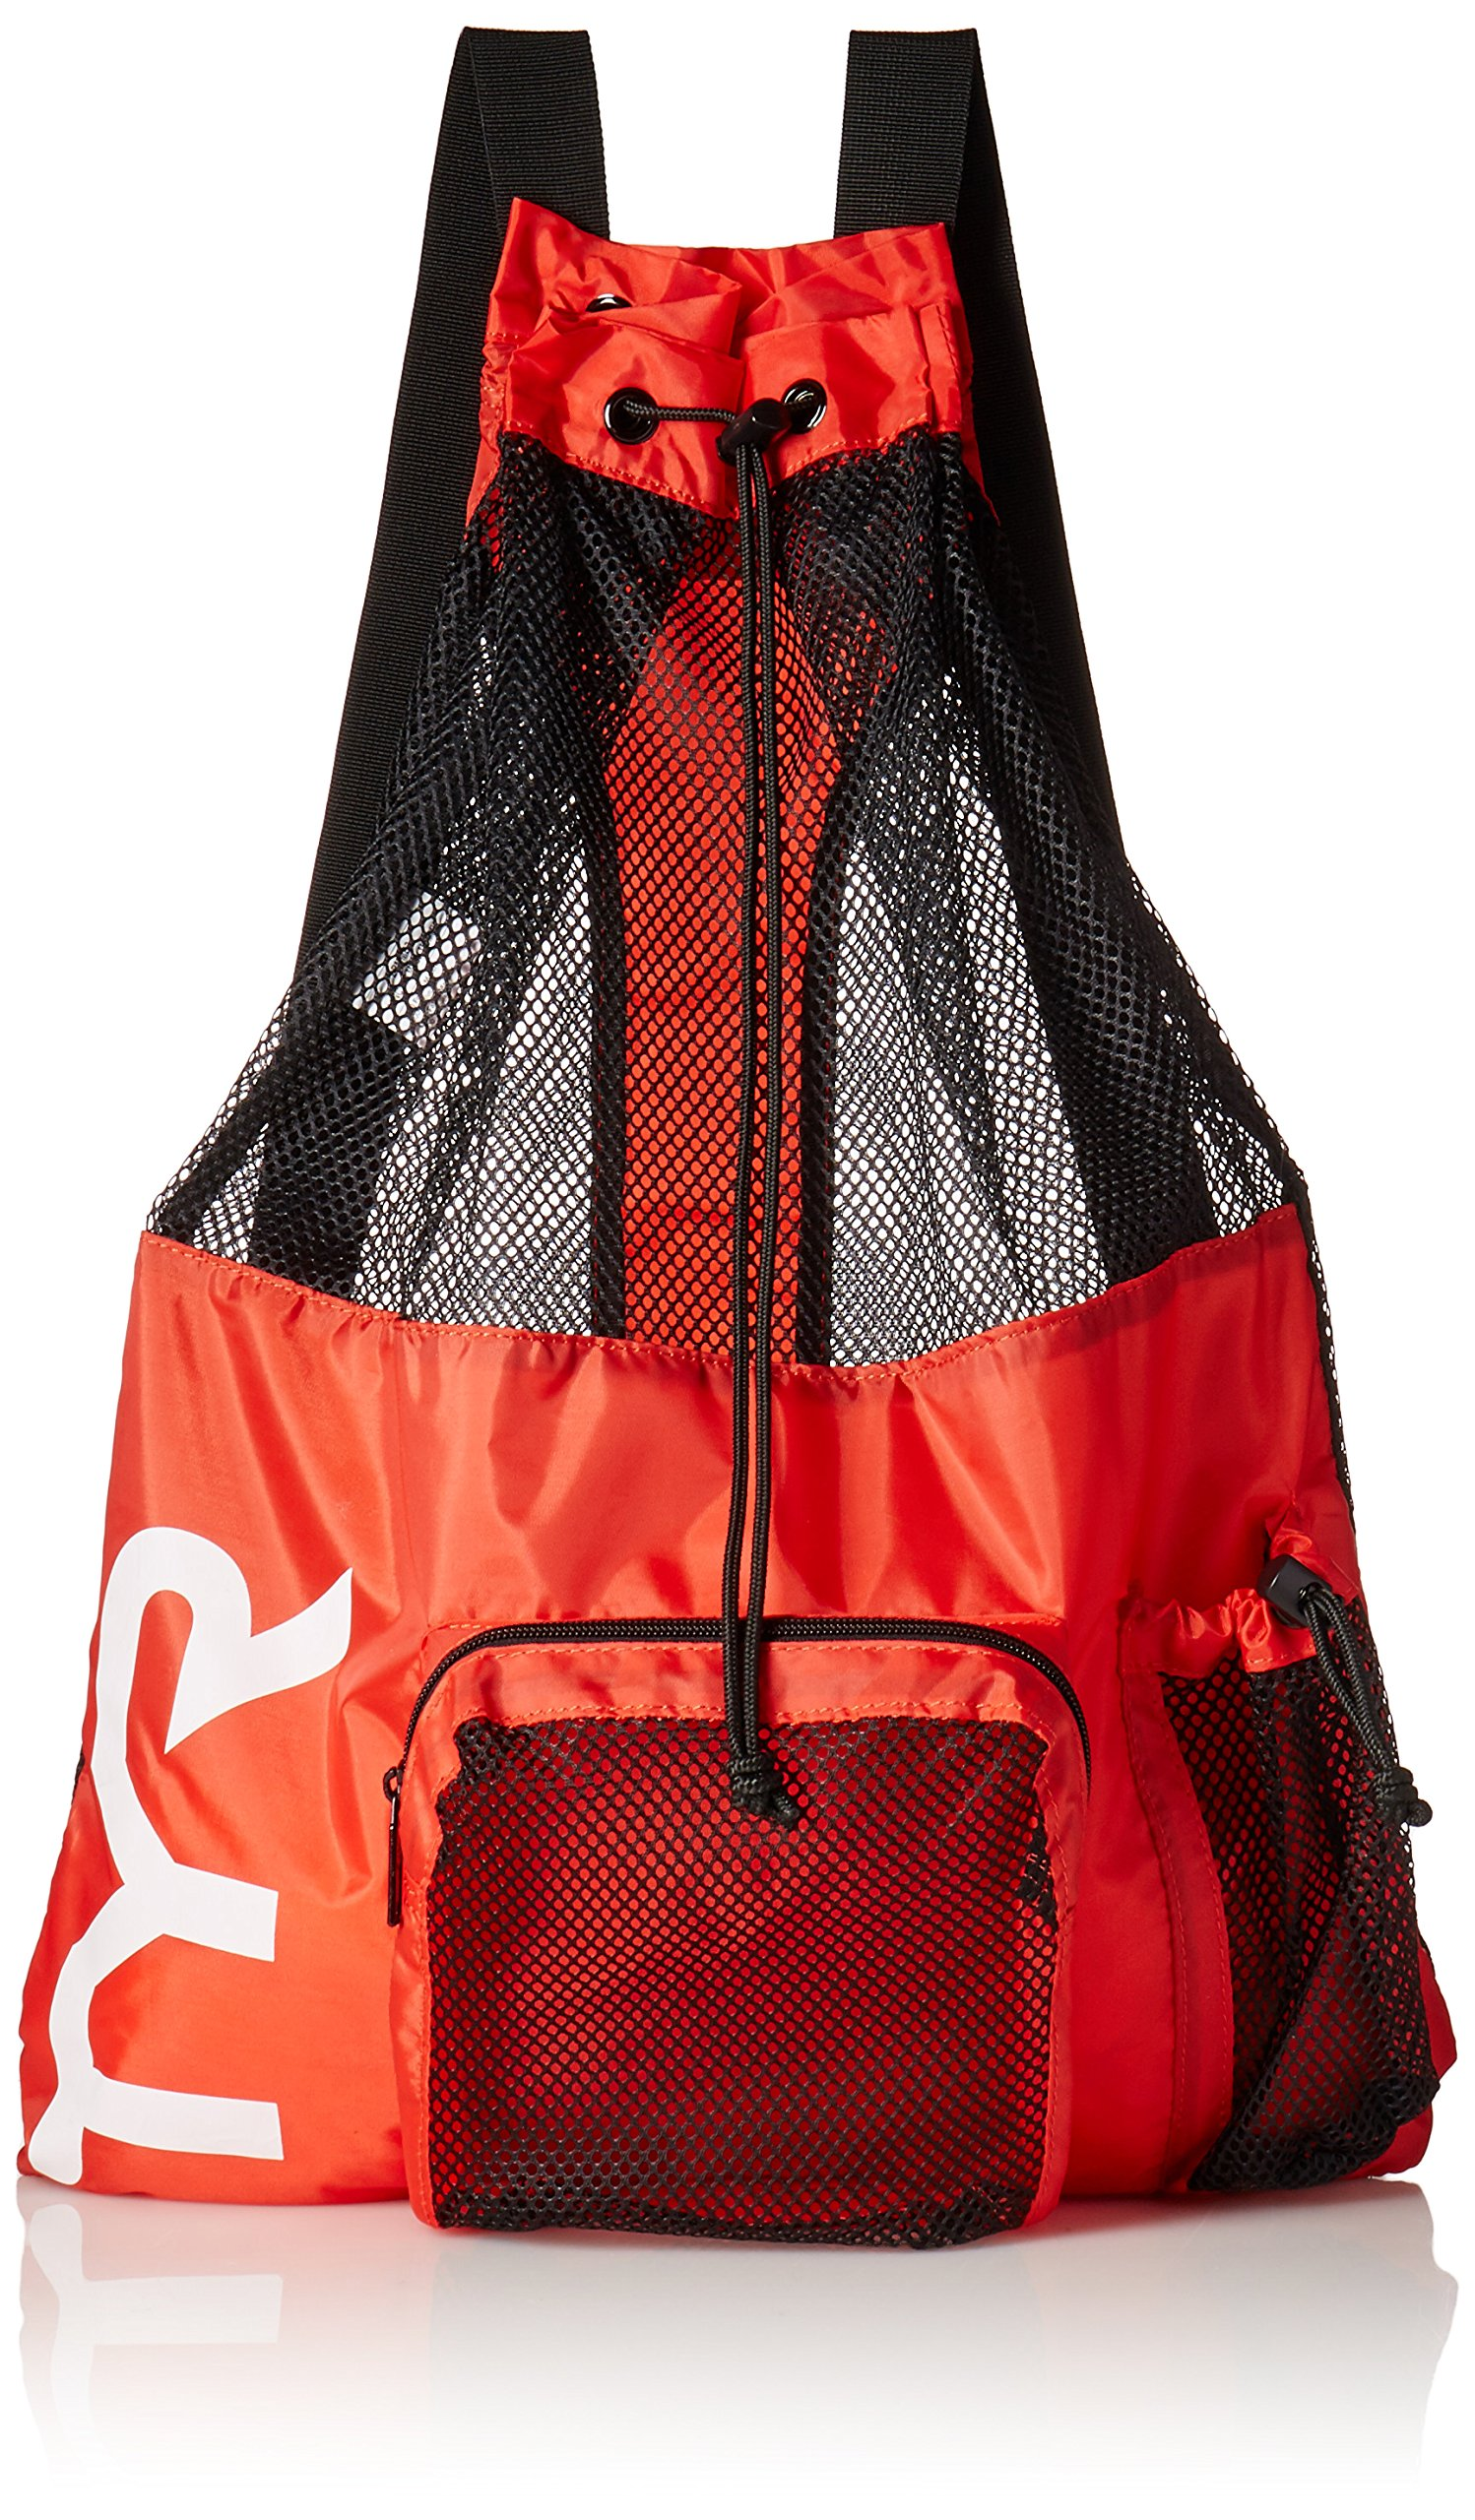 TYR Big Mesh Mummy Backpack, Red, Medium by TYR (Image #1)